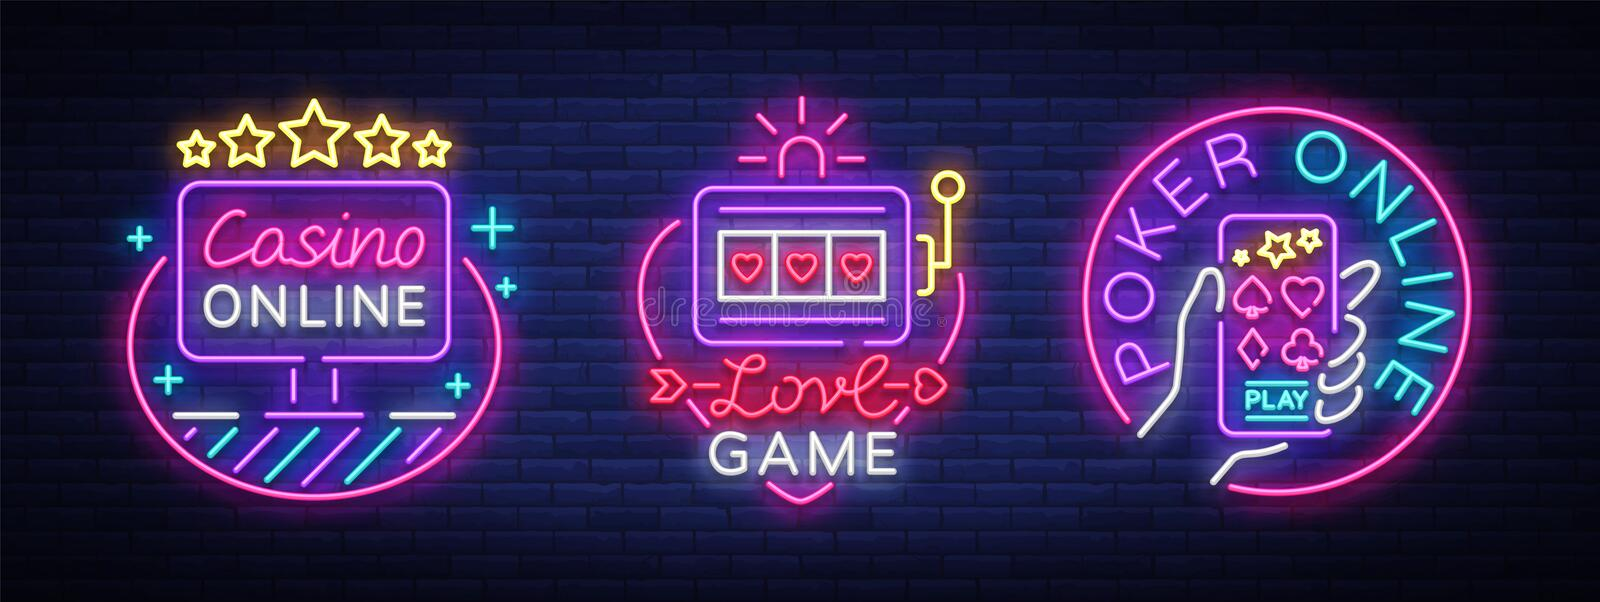 Casino collection of neon signs. Design template in neon style. Slot Machines, Poker Online Bright Logo Character vector illustration